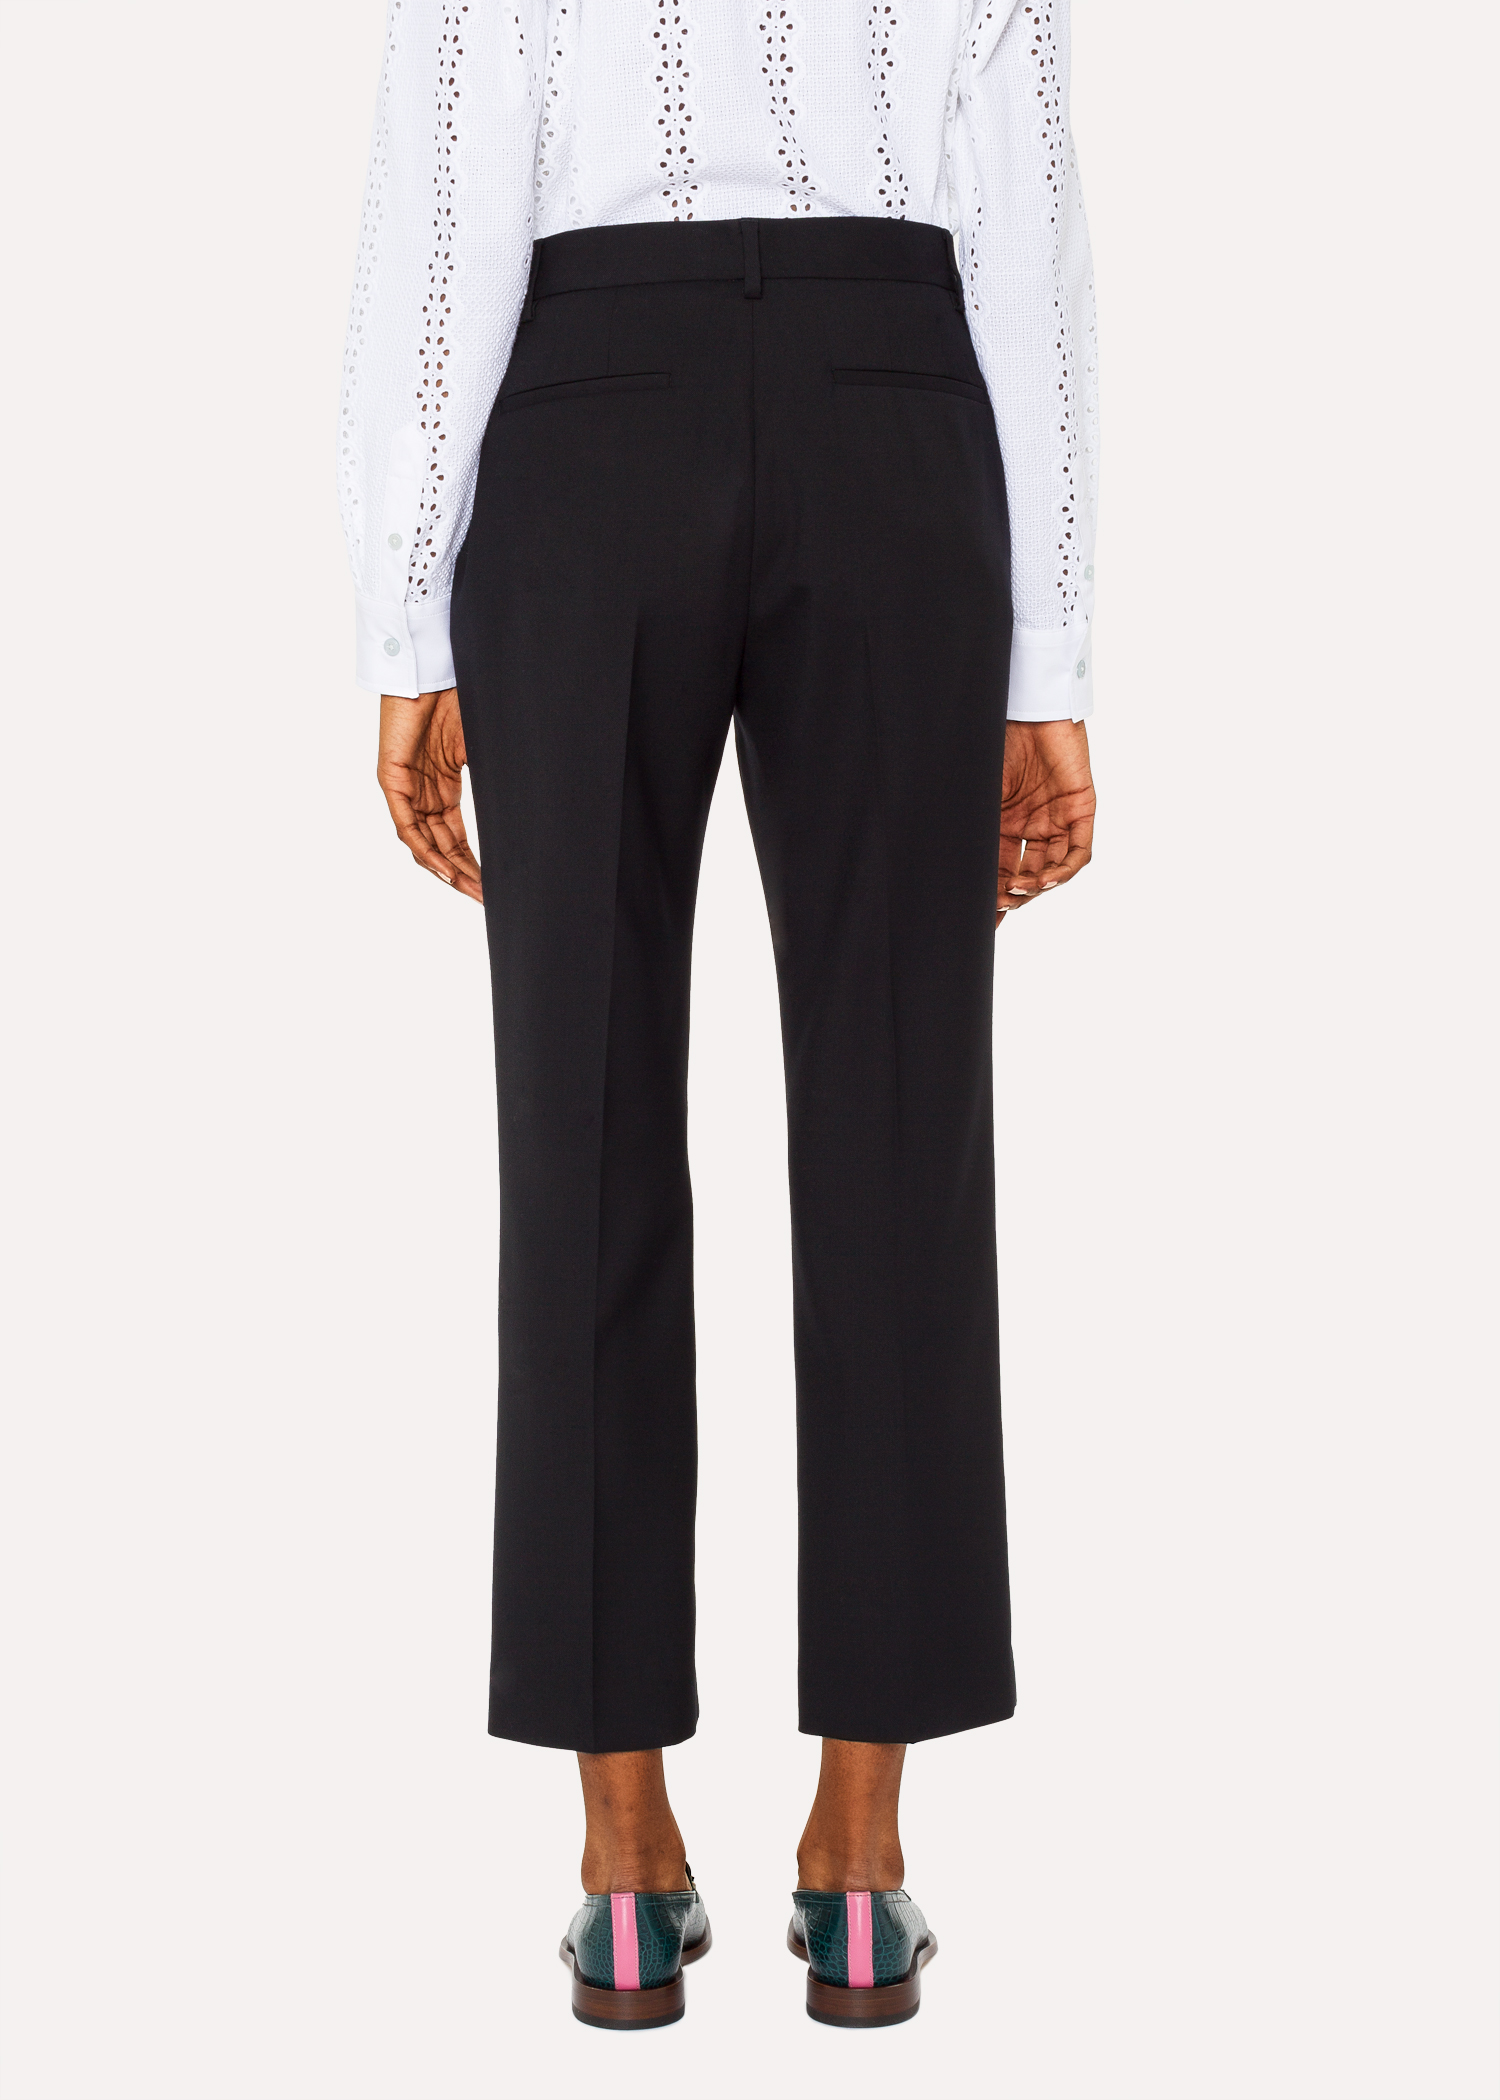 30056ca8fe7e A Suit To Travel In - Women s Black Slim-Fit Wool Pants - Paul Smith US